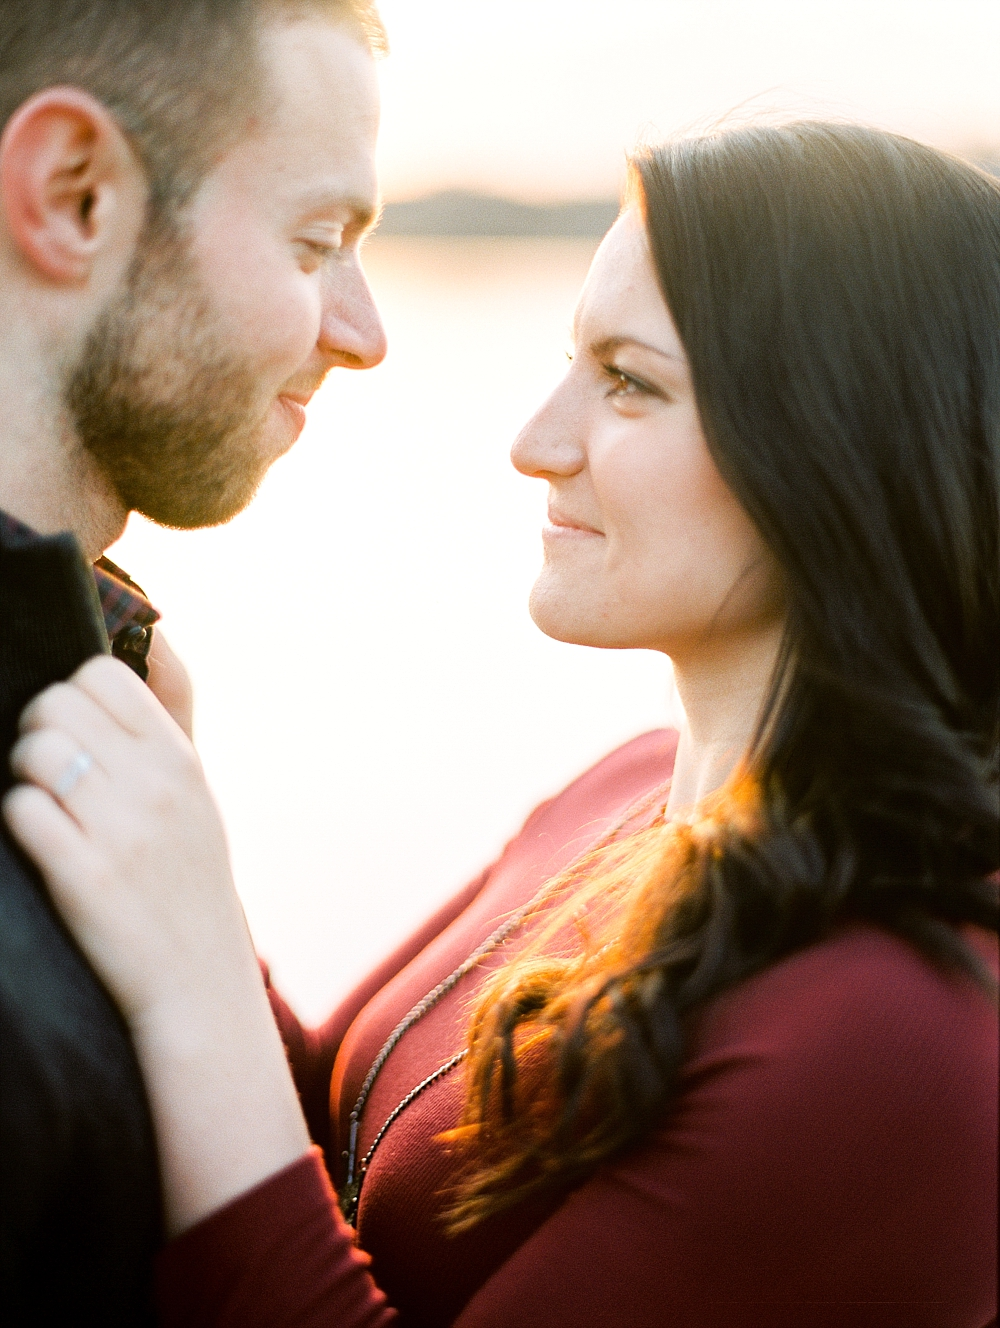 JuicebeatsPhotography_KnoxvilleEngagement_Kristina&Ben_0044.jpg